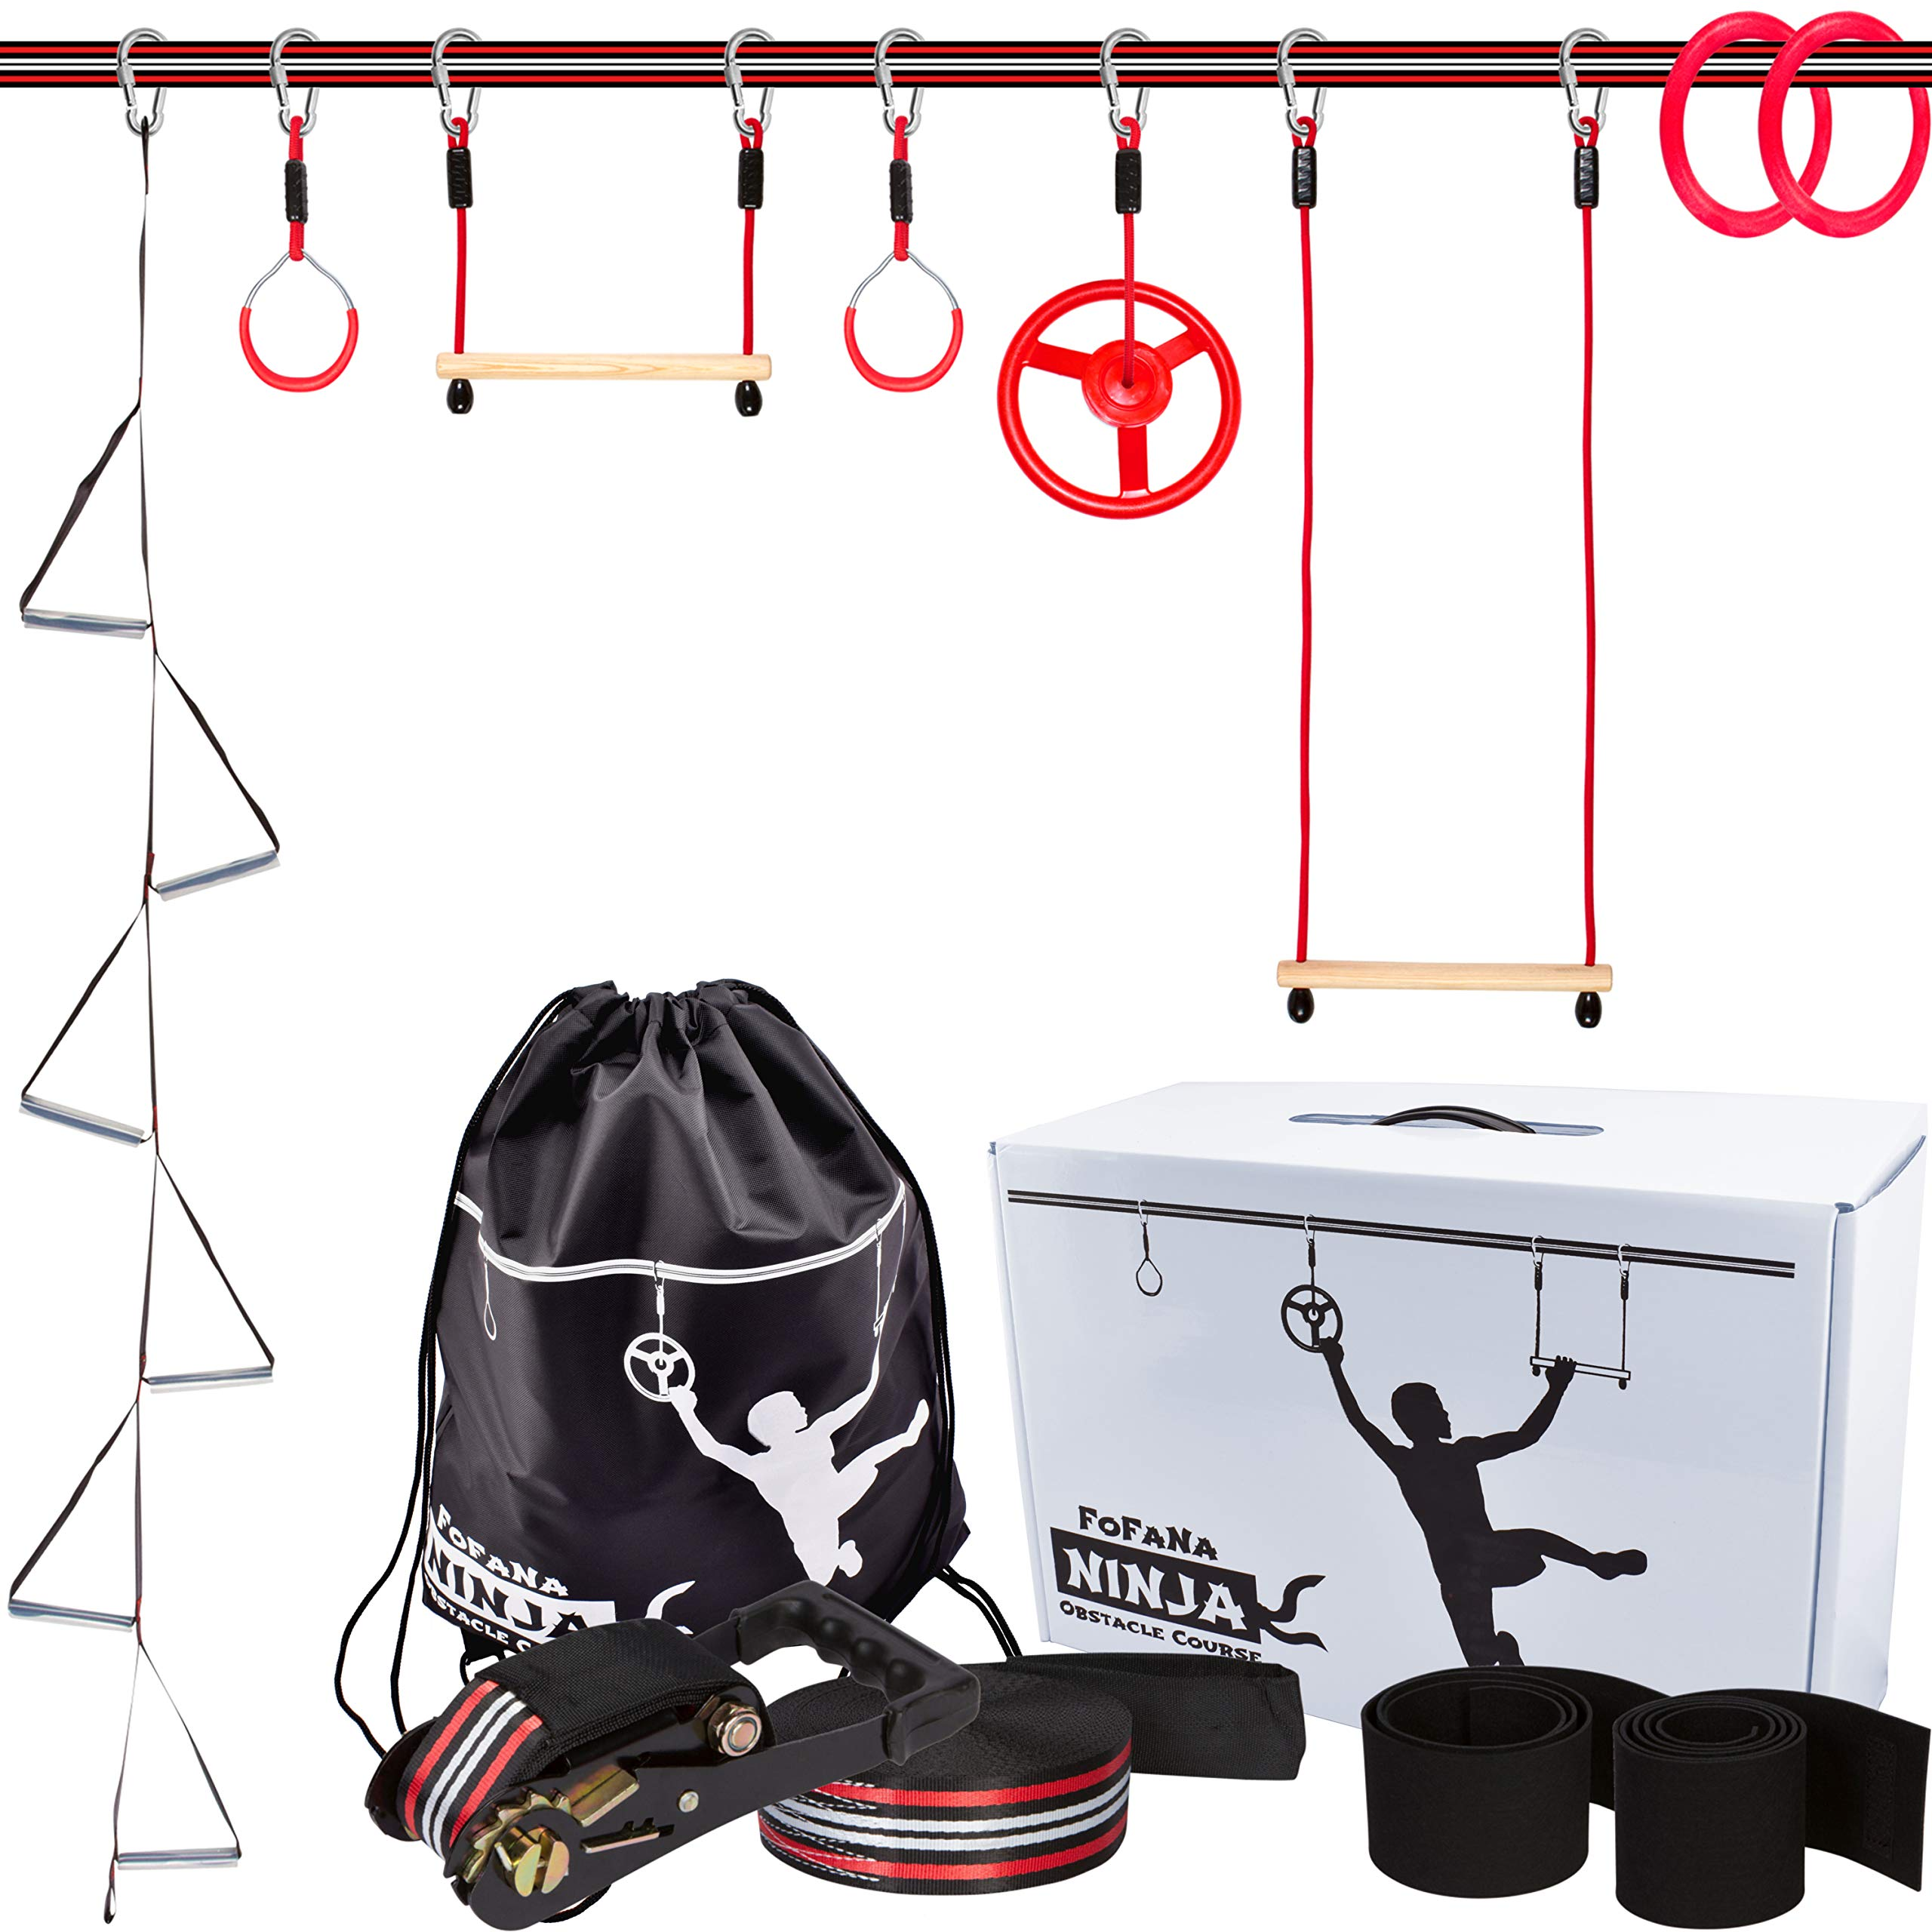 Ninja Warrior Training Equipment for Kids - 65 Foot Ninja Slackline Obstacle Course for Kids with 8 Obstacles: Monkey Bars, Fitness Gymnastic Rings, Climbing Rope Ladder, Spinning Wheel by Fofana